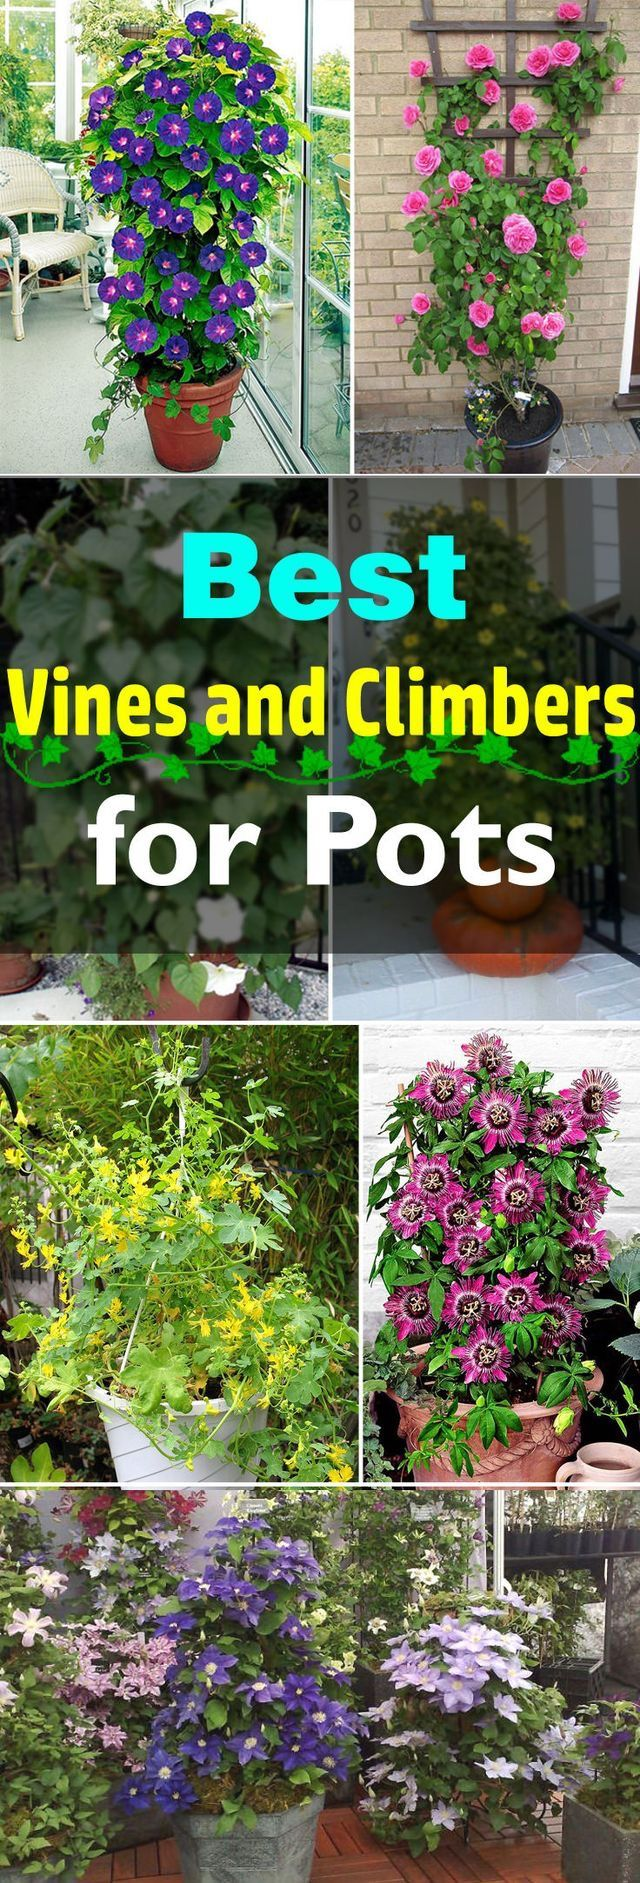 SO many good ideas for climbing flowers